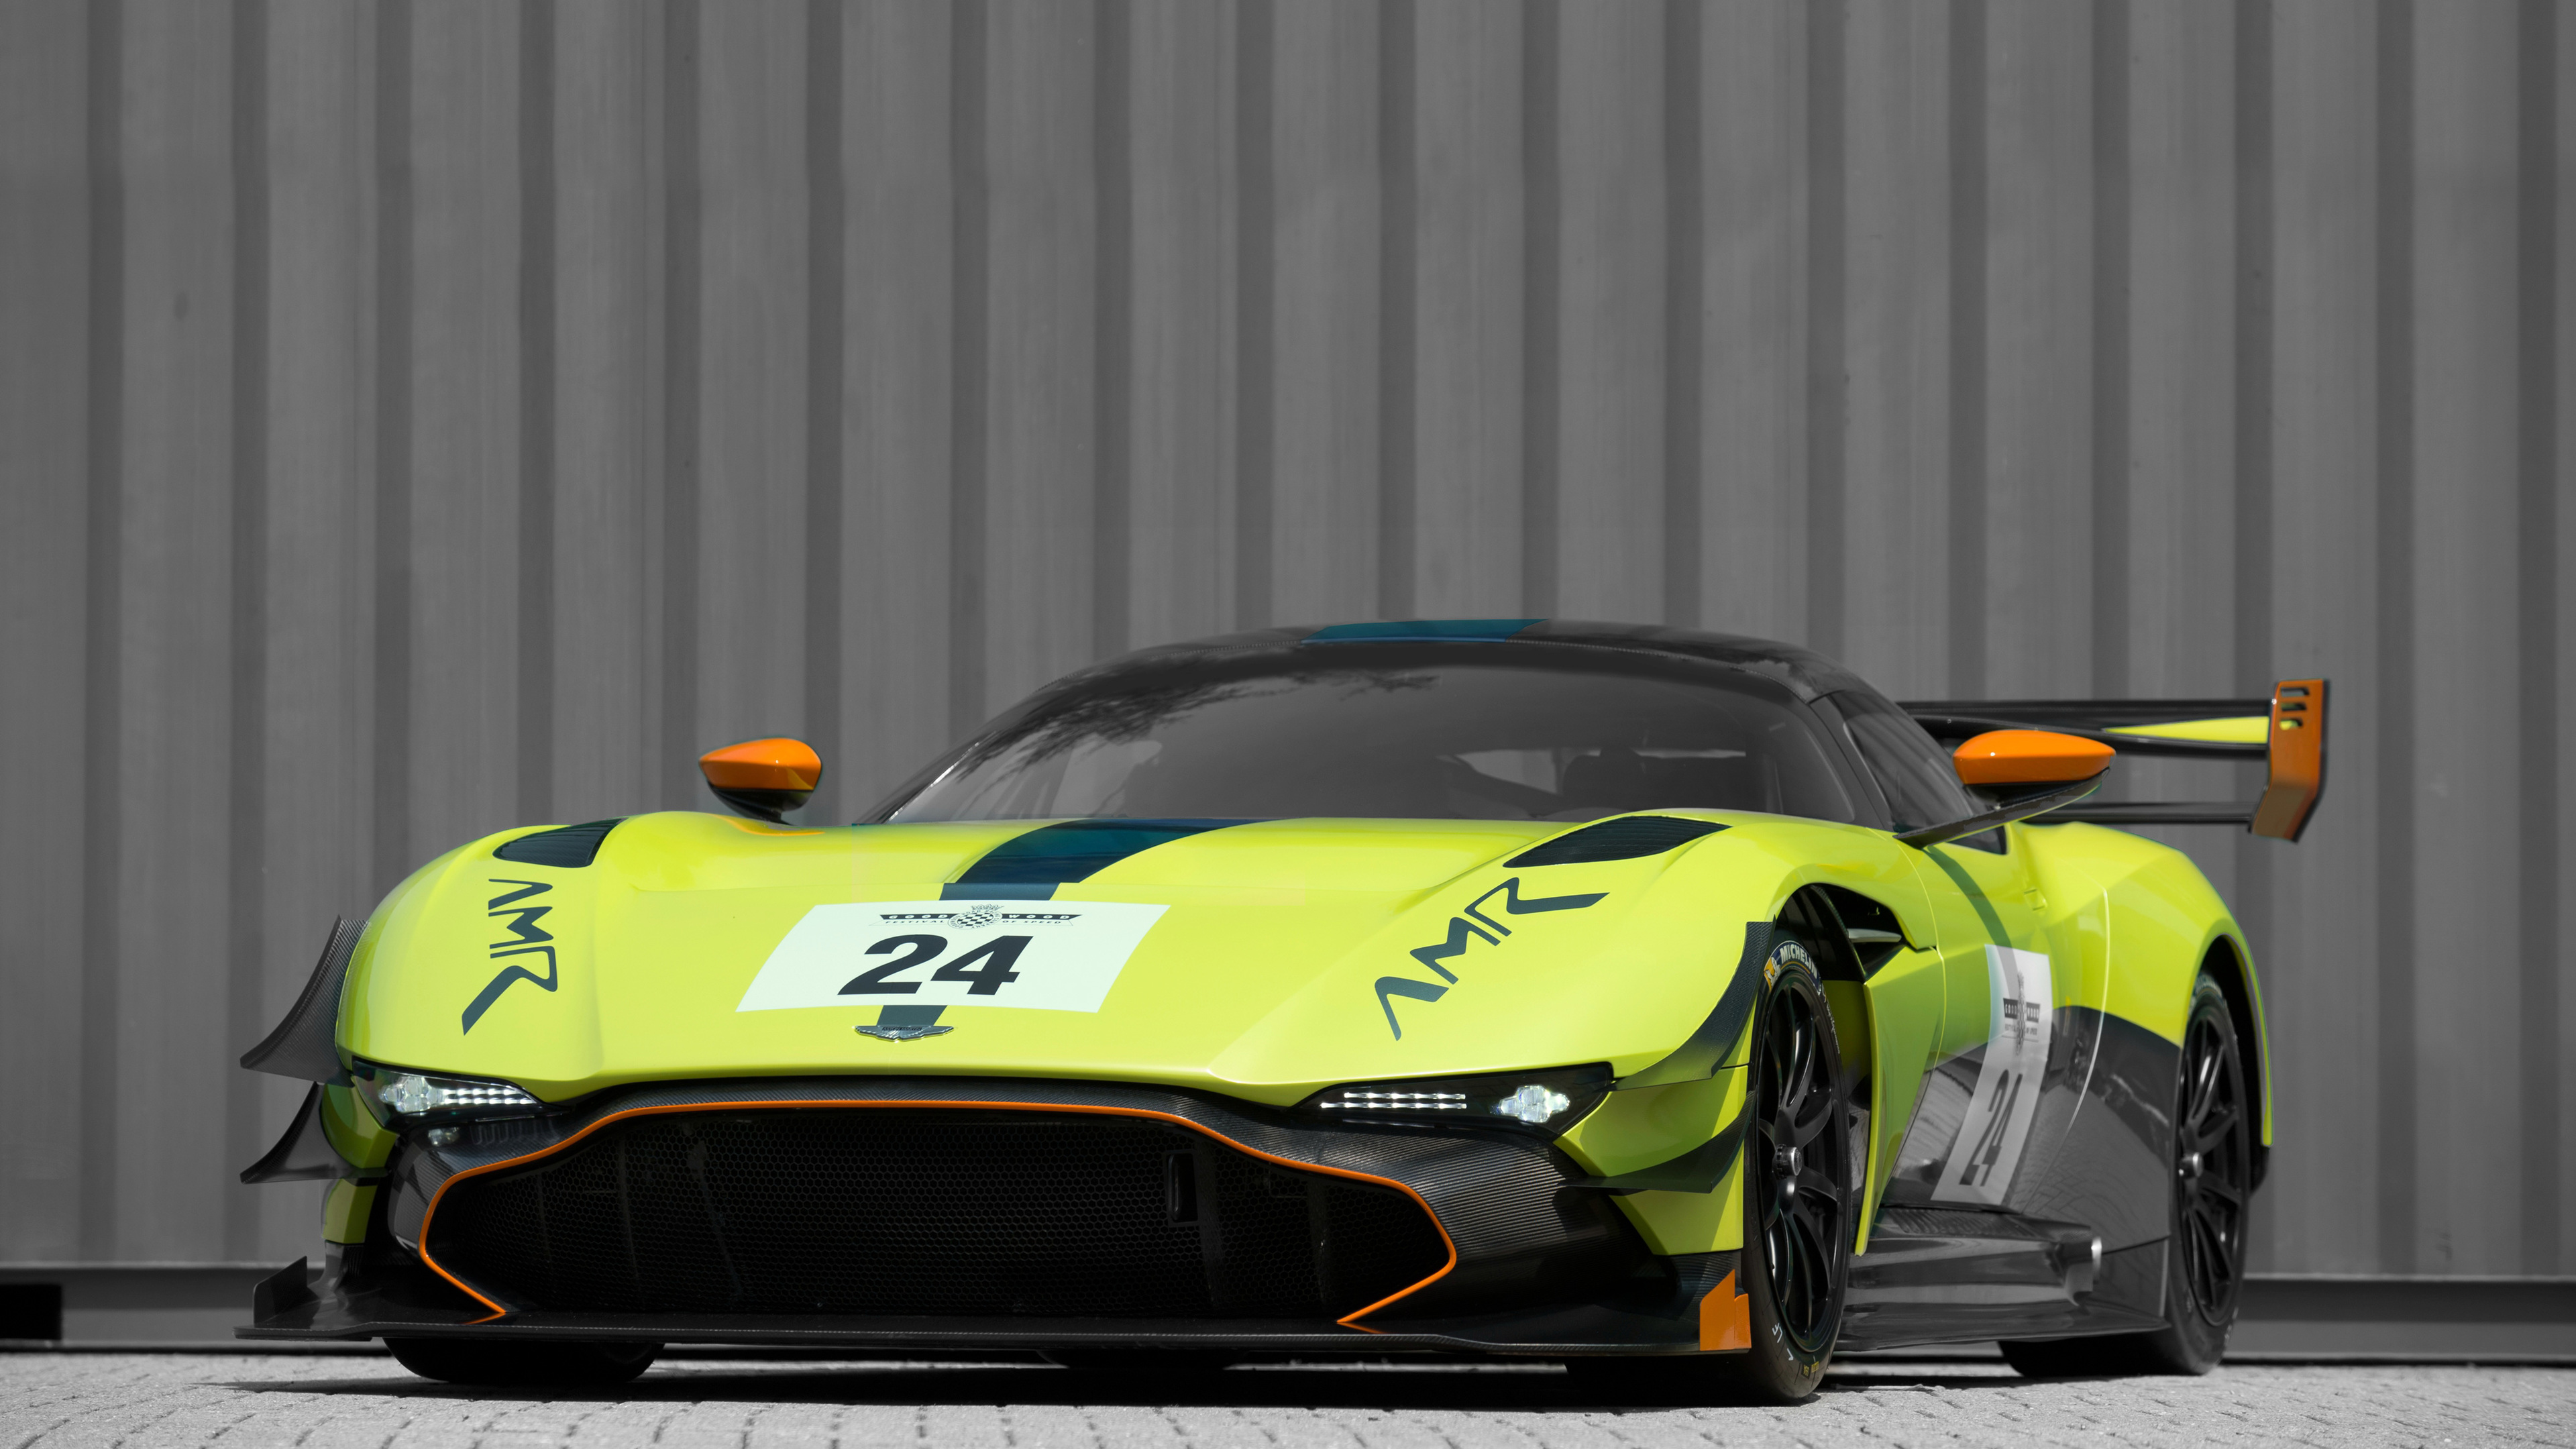 aston martin vulcan amr pro 1539105563 - Aston Martin Vulcan AMR Pro - hd-wallpapers, cars wallpapers, aston martin wallpapers, aston martin vulcan amr pro wallpapers, 4k-wallpapers, 2018 cars wallpapers